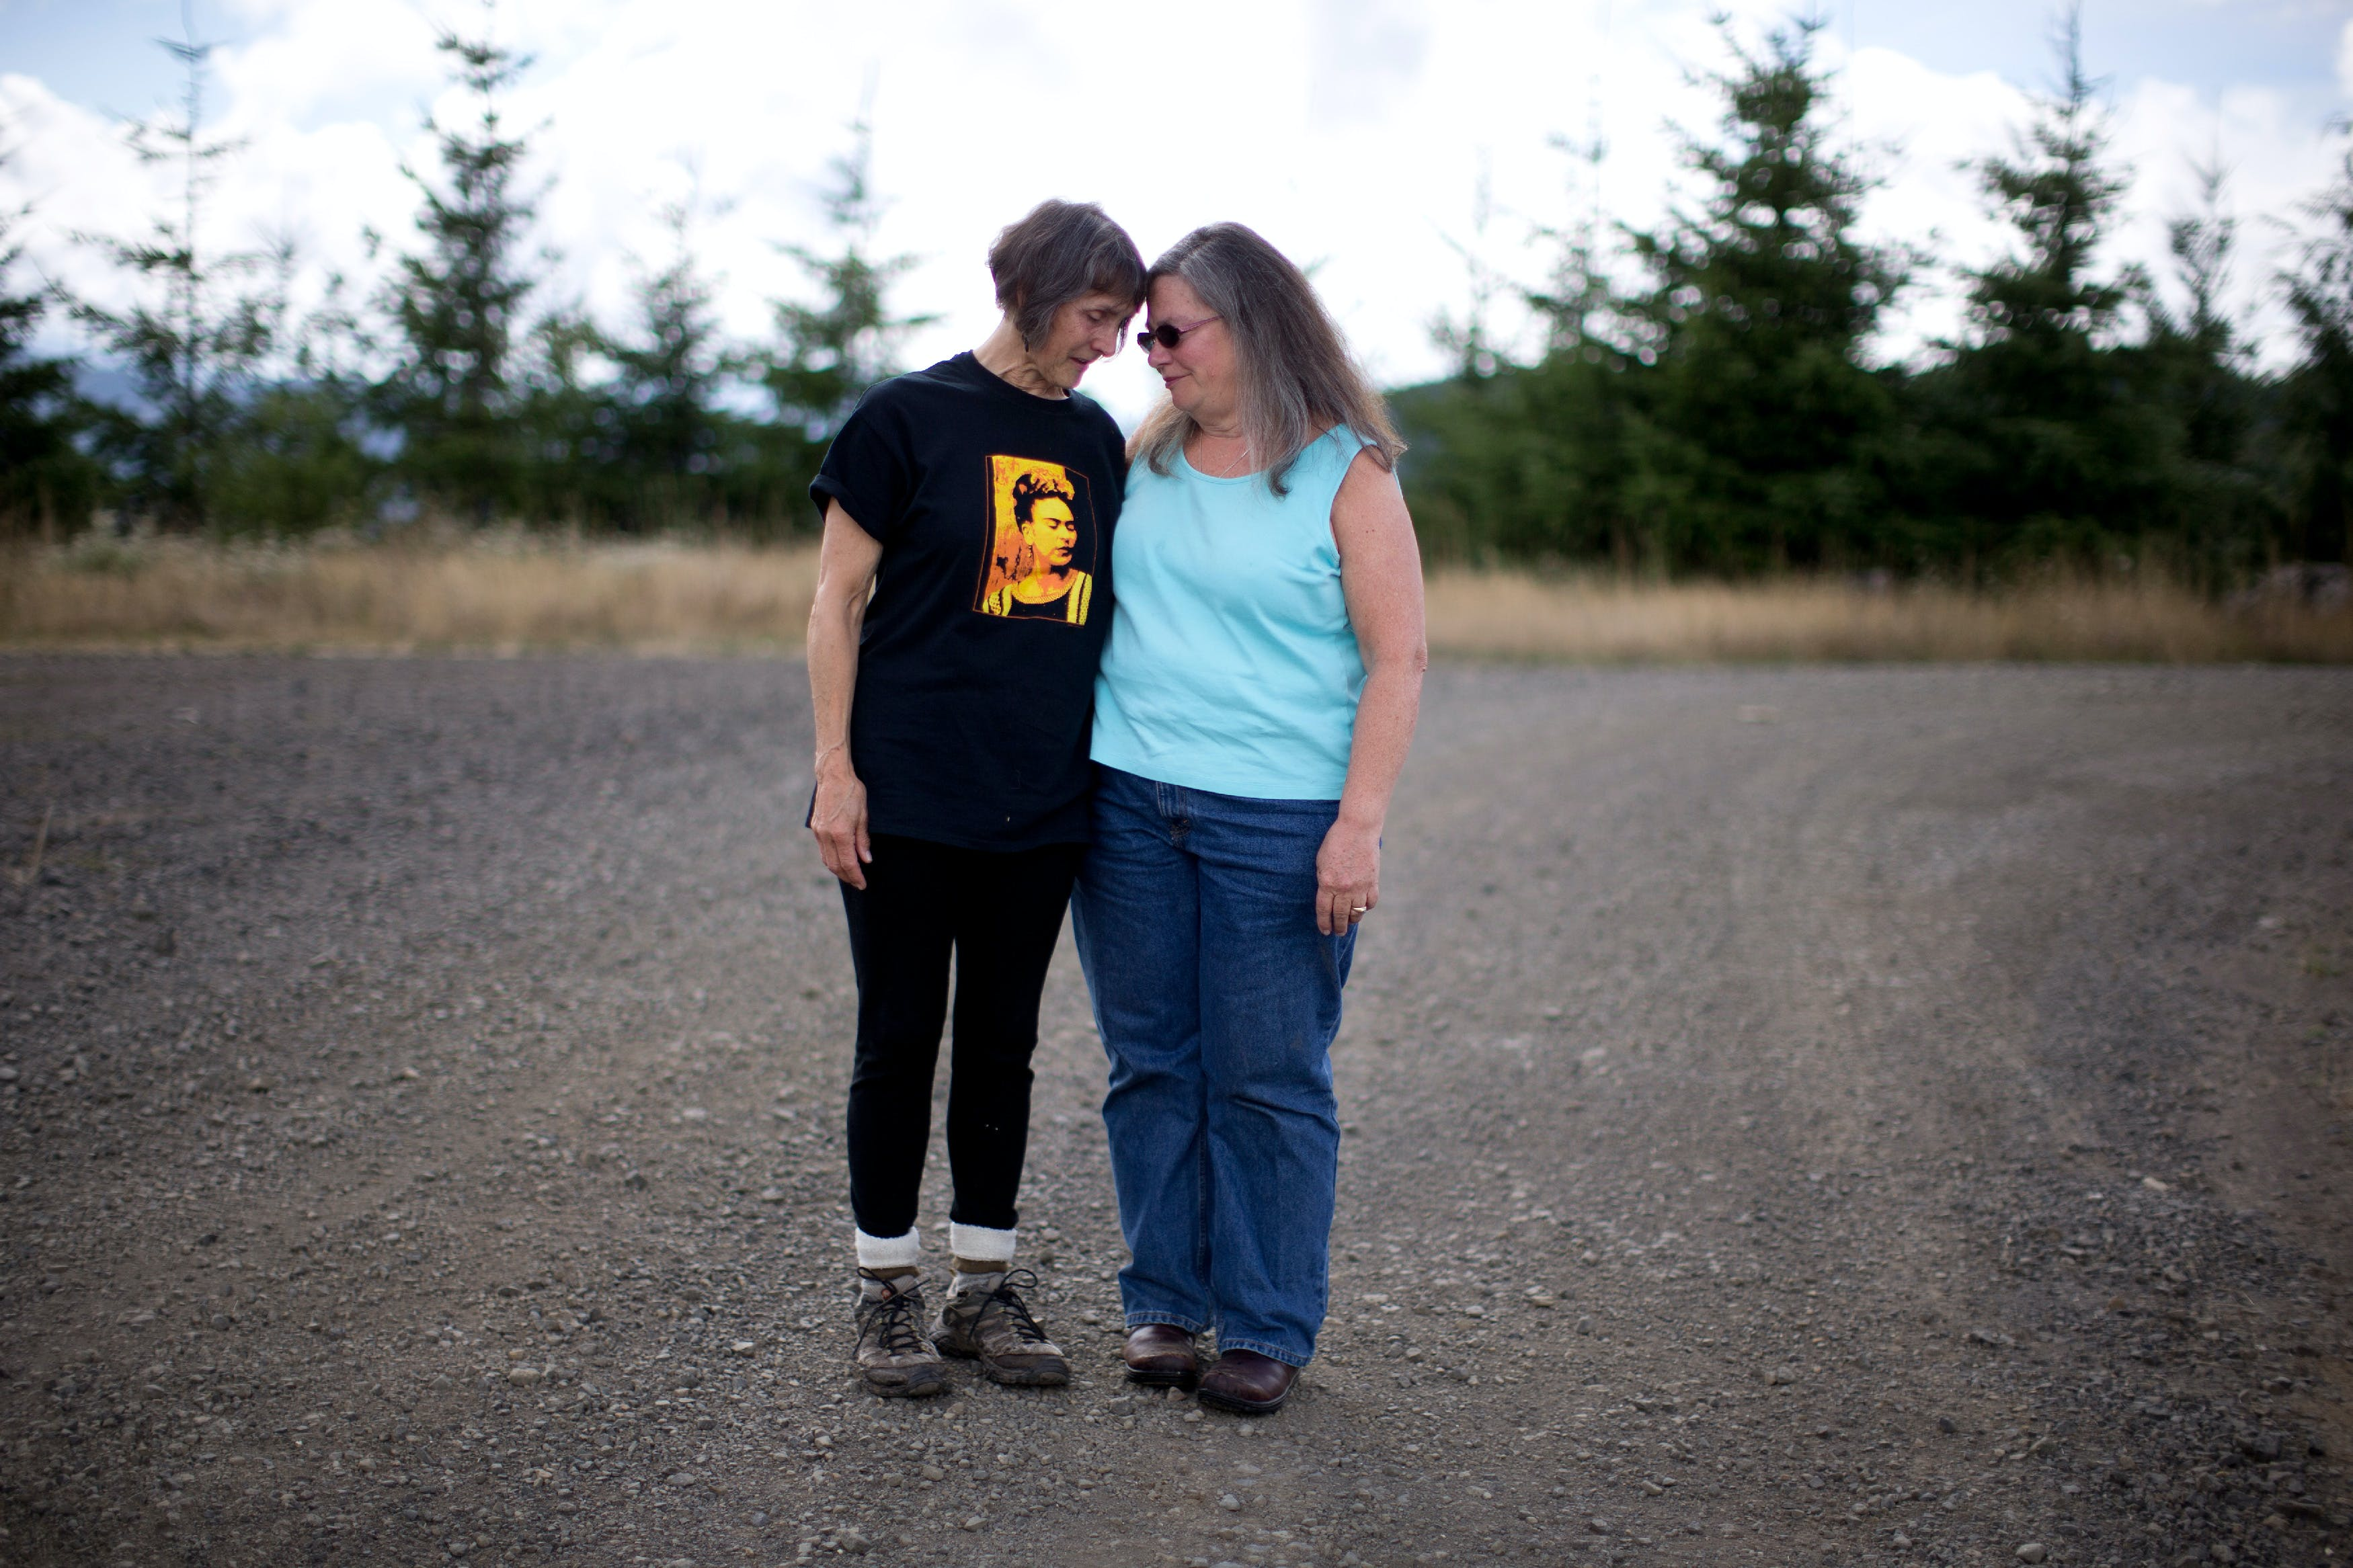 OREGON COAST, OR - SEPTEMBER 8: Barbara Davis, left, gathers support from Debra Fant, right, after becoming emotional at the sight of clear cutting of old growth timber along the coastal mountain range of Oregon. The two are part of the group Lincoln County Community Rights, who were able to get an ordinance passed to stop the aerial spraying of pesticides. September 8, 2018 (Photo by Beth Nakamura For The Intercept)